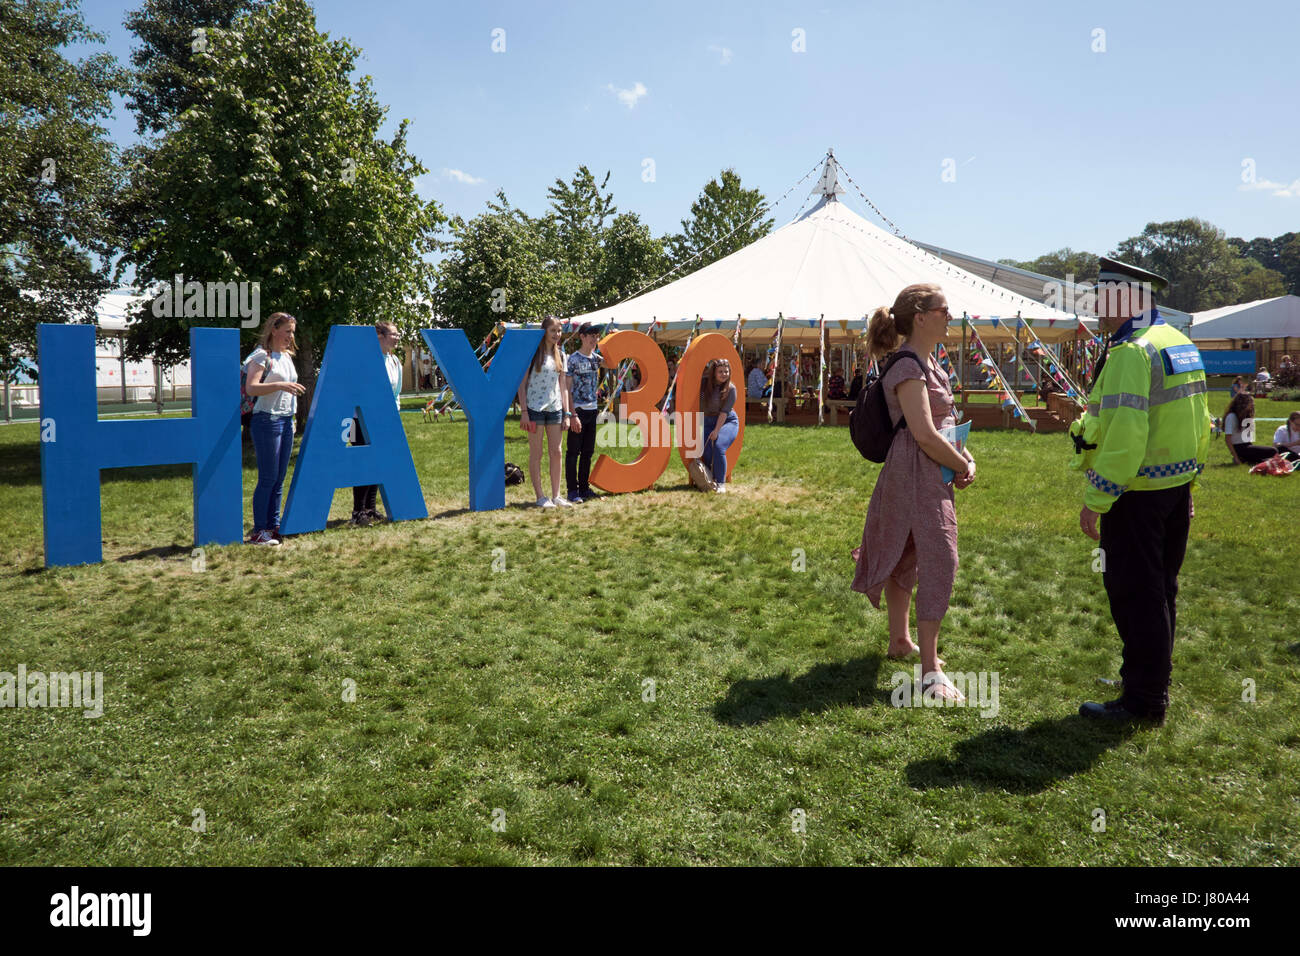 the Hay festival, 30 years now in 2017 - Stock Image